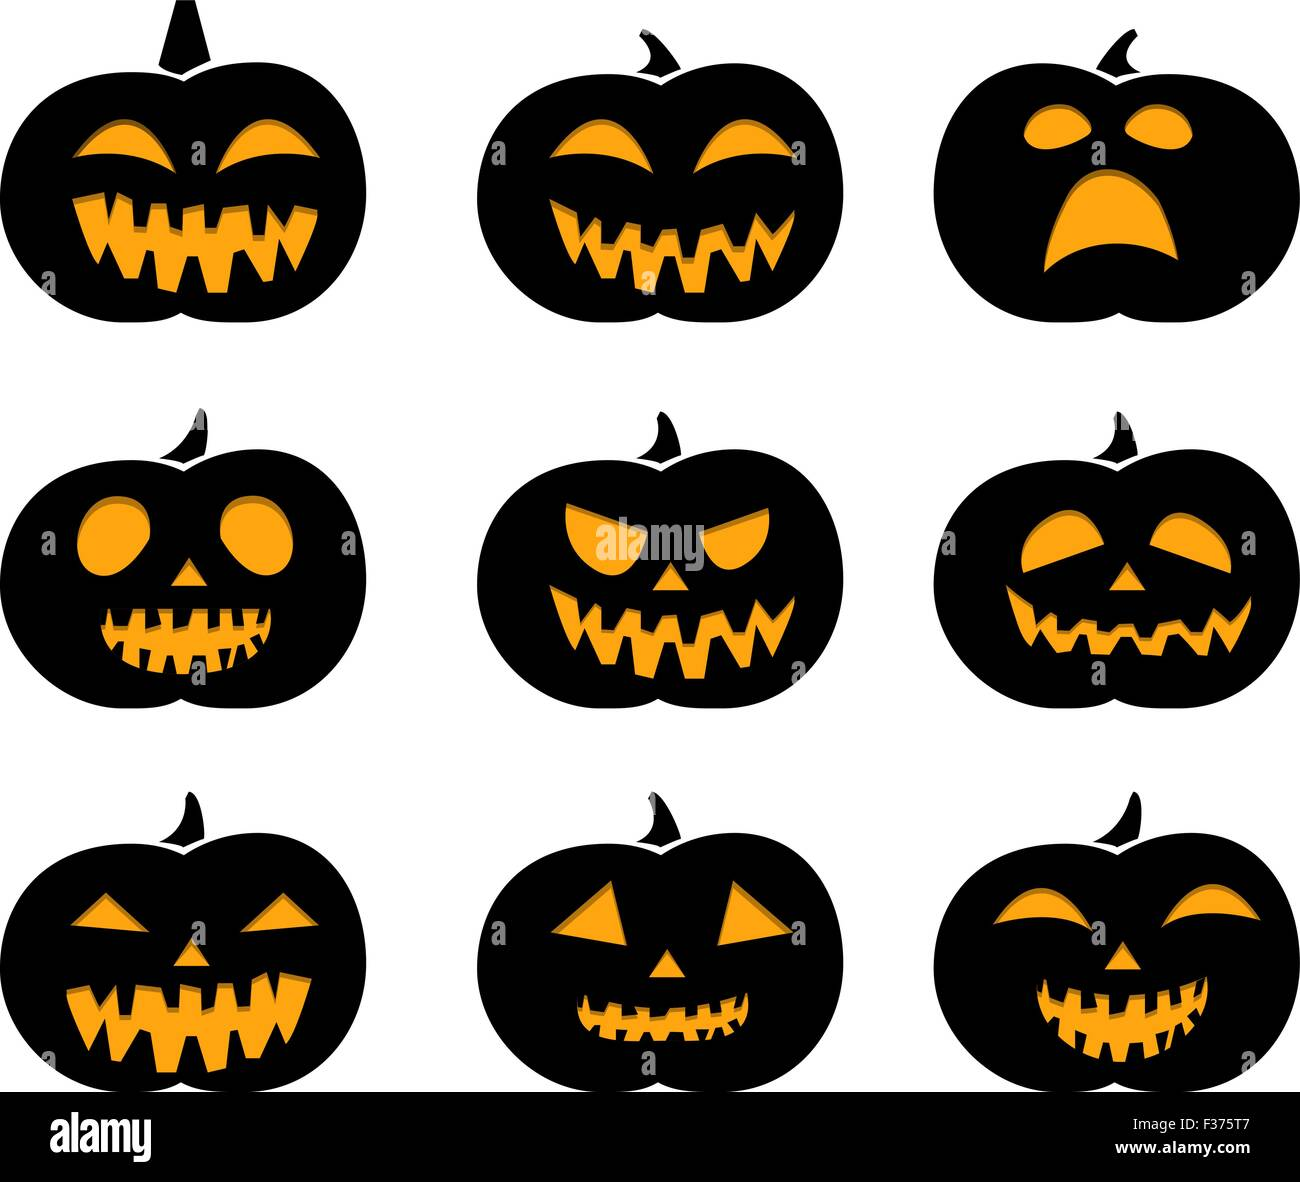 Set of black silhouette pumpkins - Stock Vector